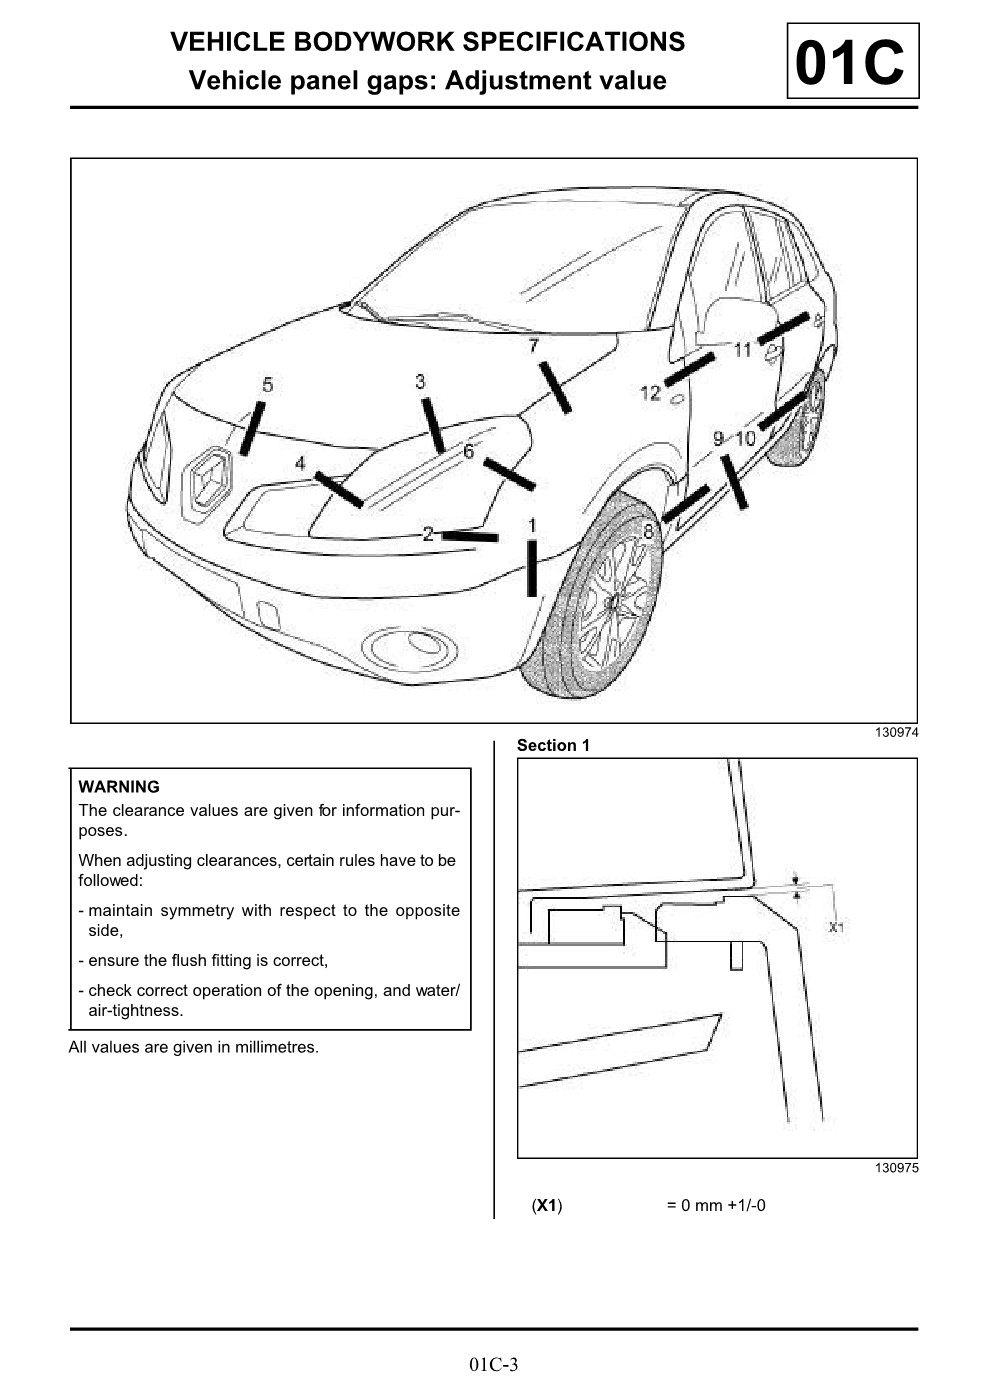 01C_VEHICLE BODYWORK SPECIFICATIONS- KOLRM2S21_Page_5